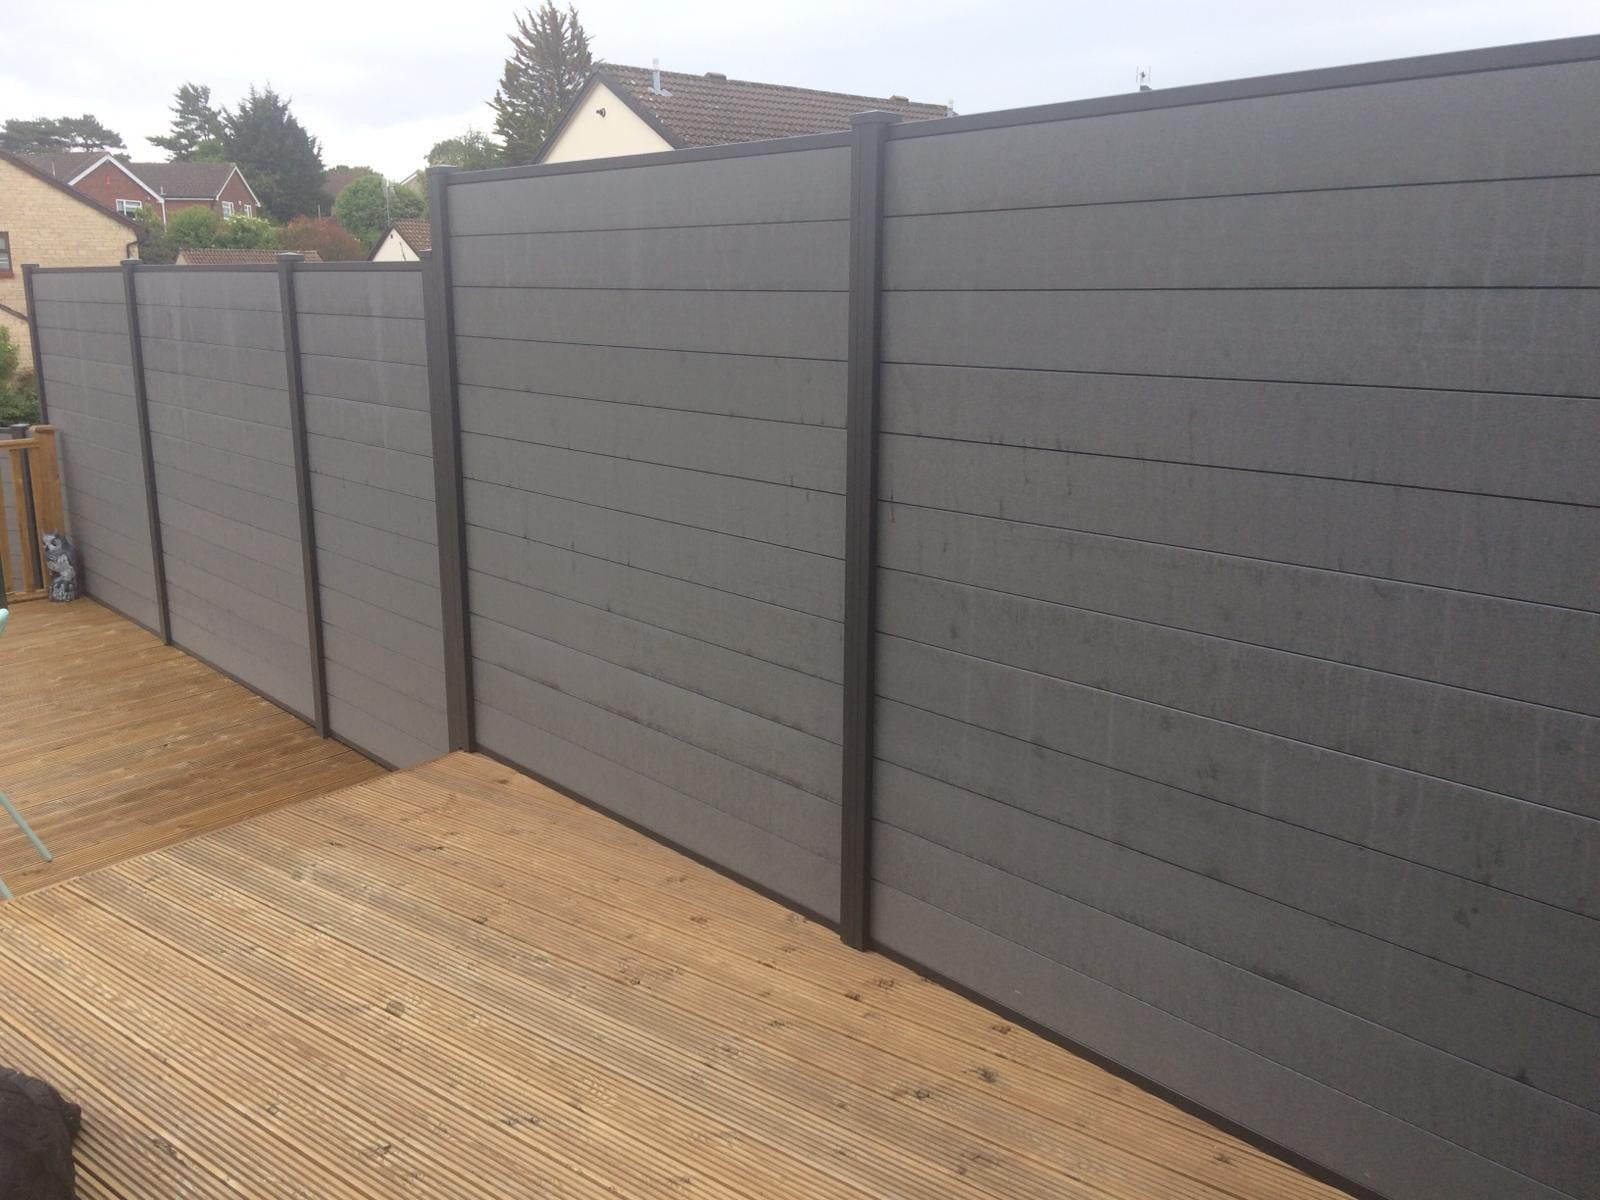 Pvc Fencing Panels Full Privacy For Use In Concrete Posts 4 X 6 Feet Ebay